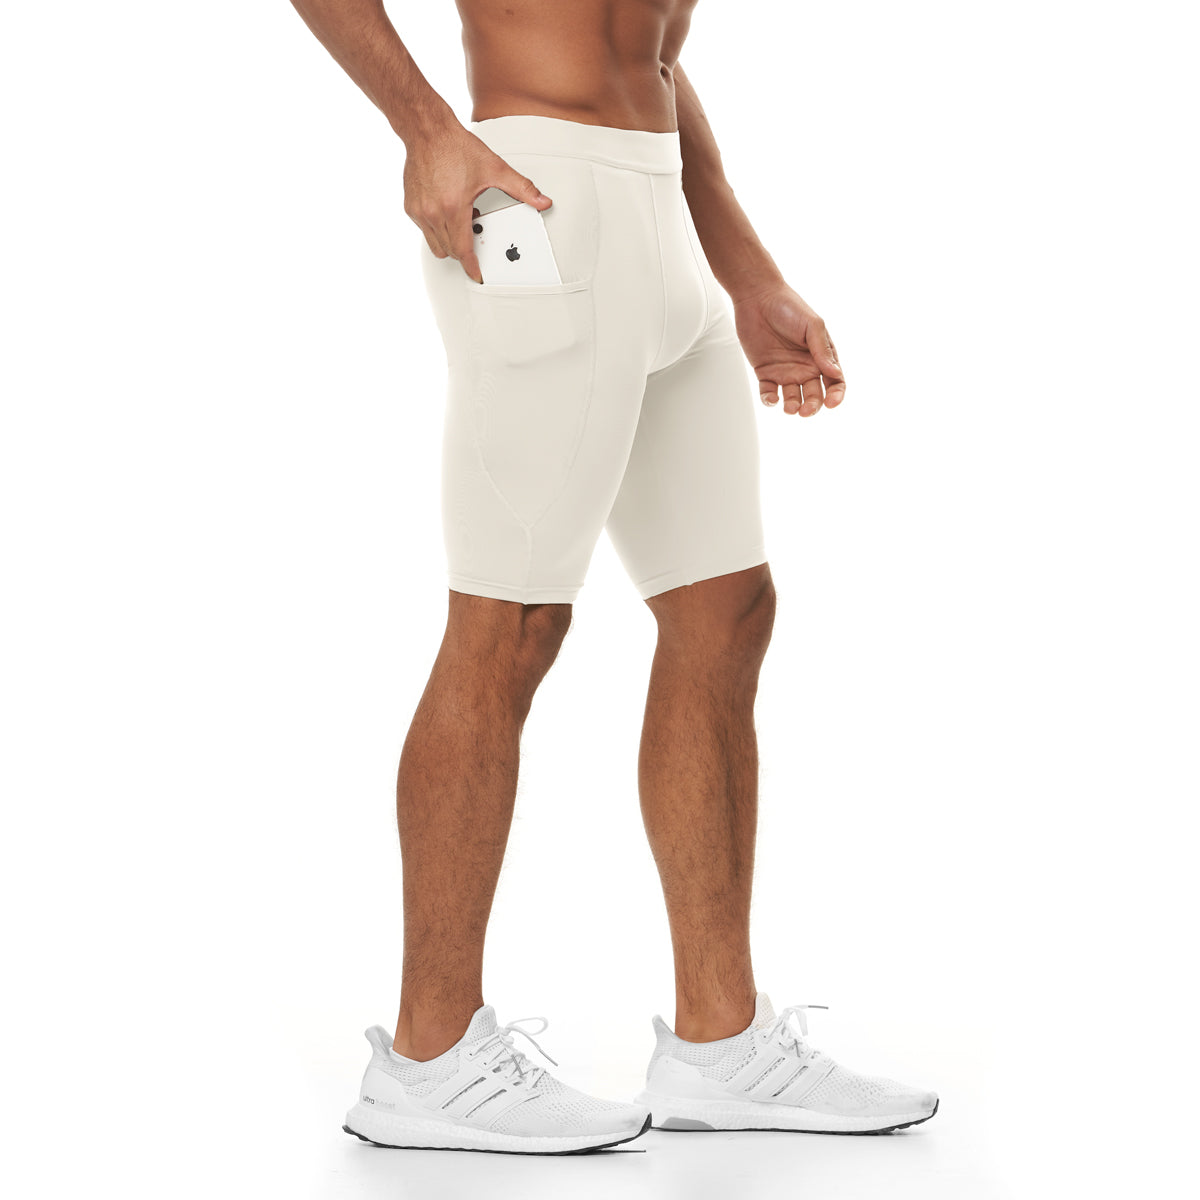 0286. Reflexx® Side Pocket Performance Short - Ivory Cream